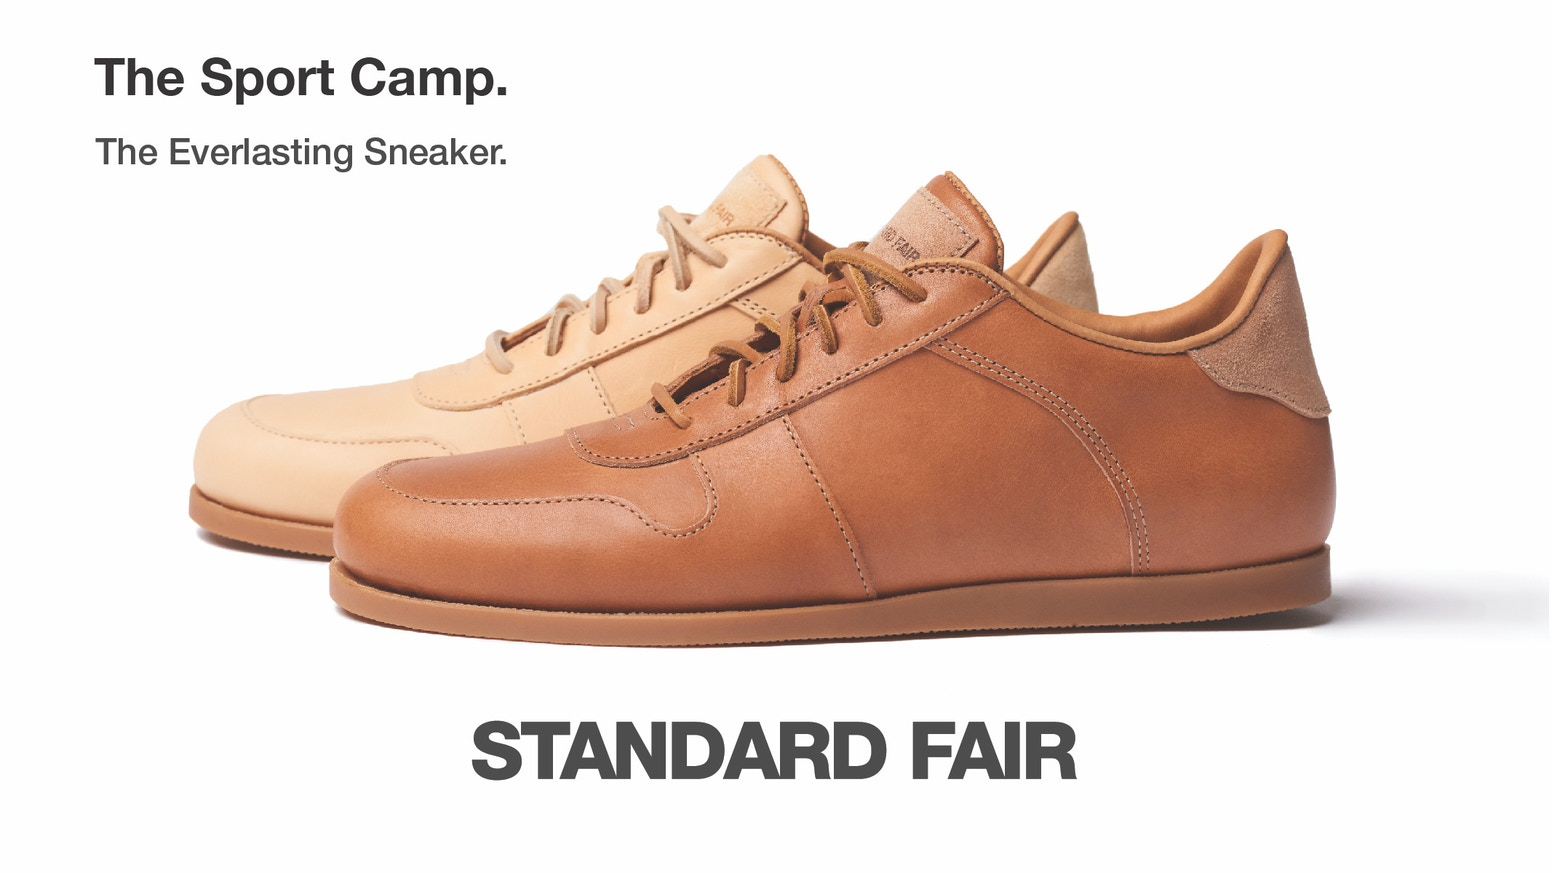 A refined, resoleable, ethically sourced sneaker made in the USA with Italian vegetable-tanned leather.